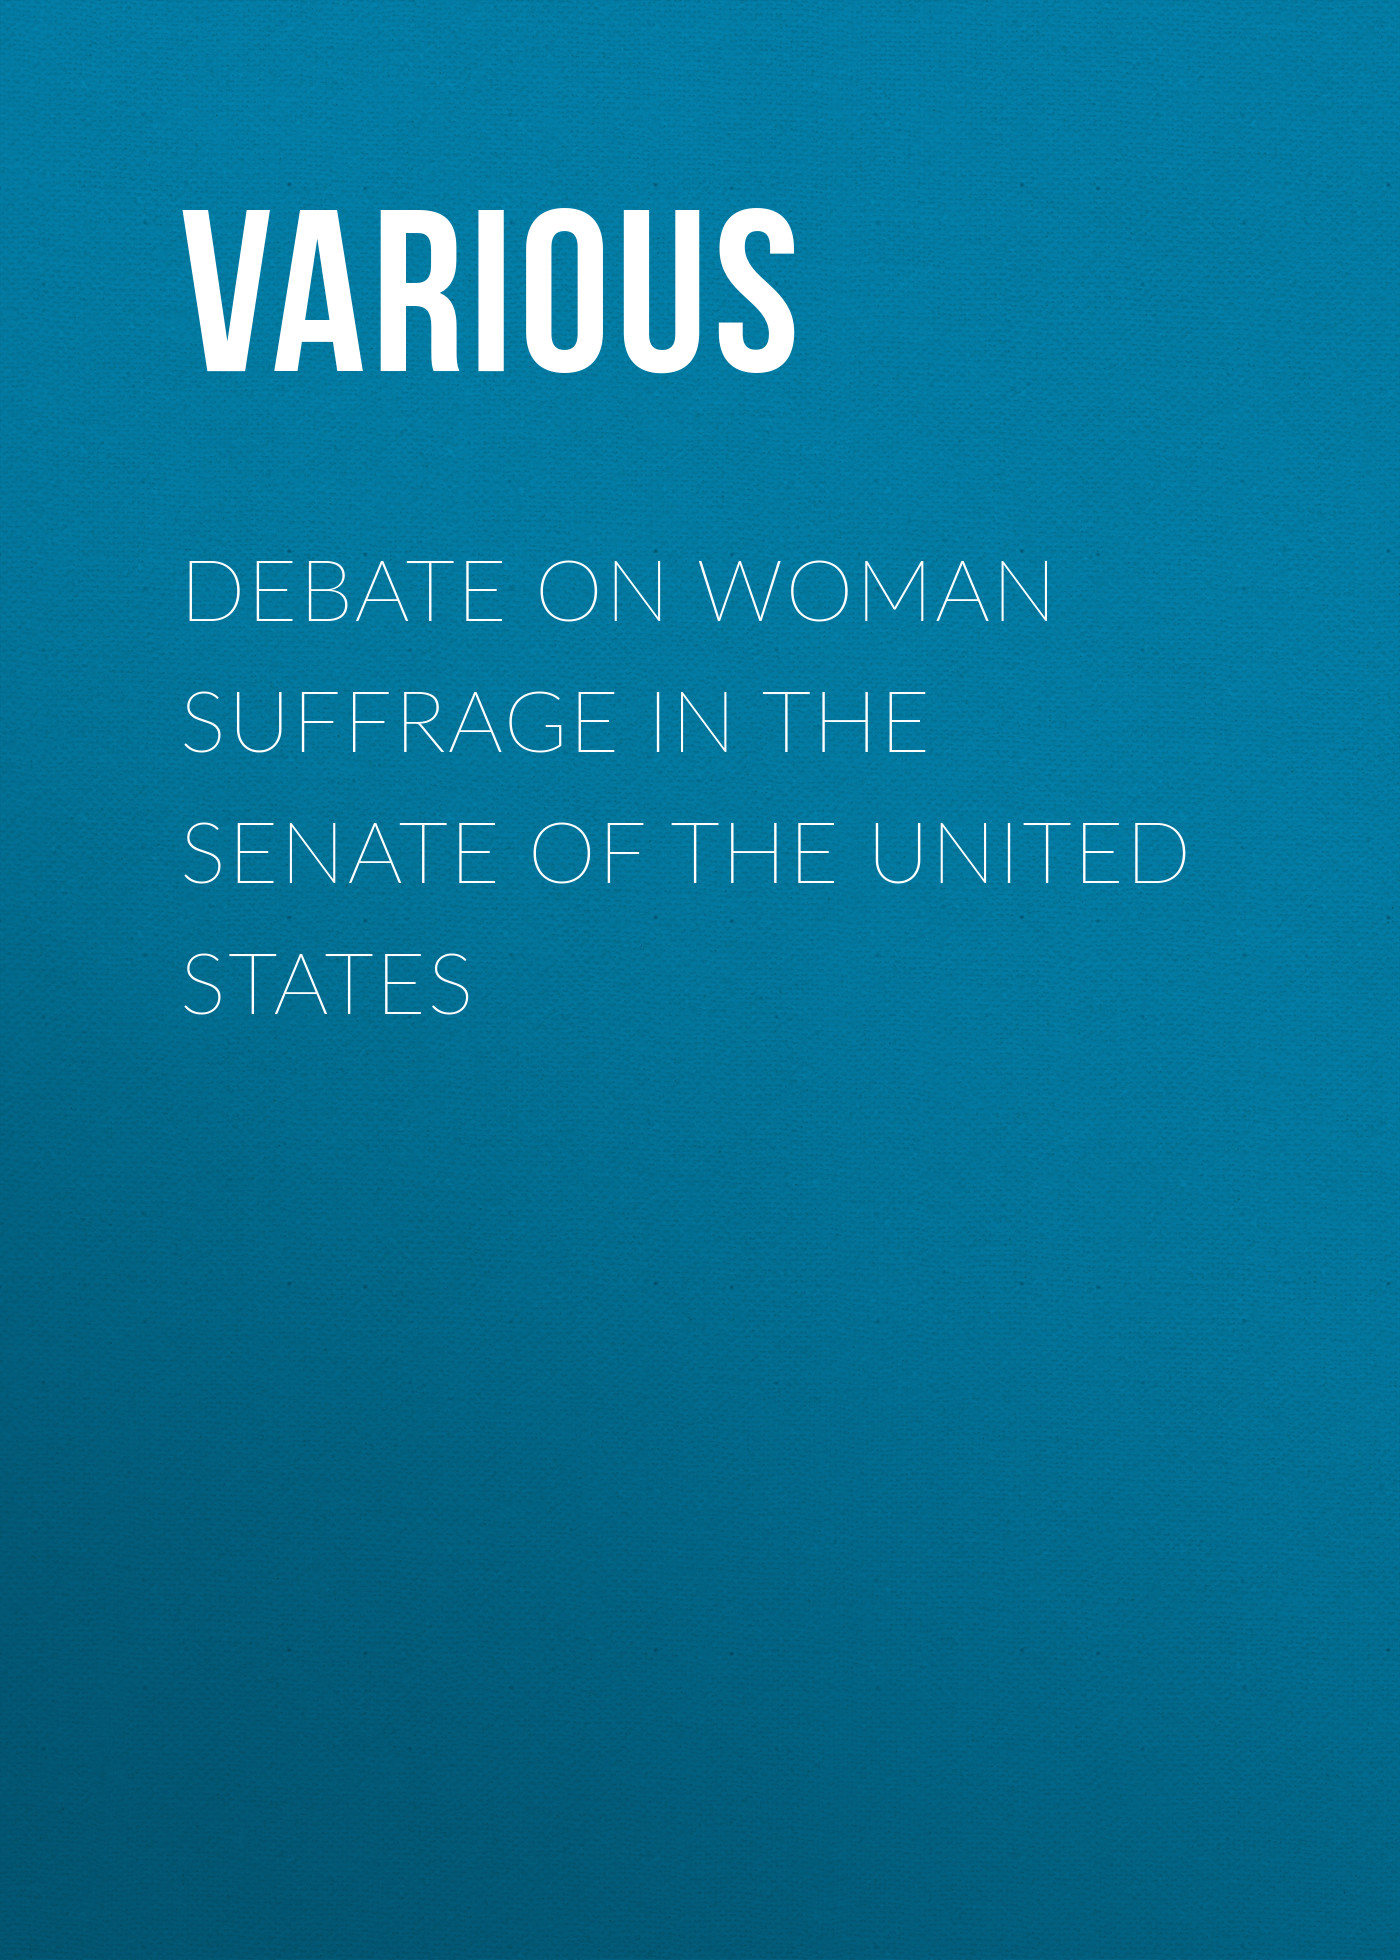 Various Debate on Woman Suffrage in the Senate of the United States шкаф для ванной the united states housing